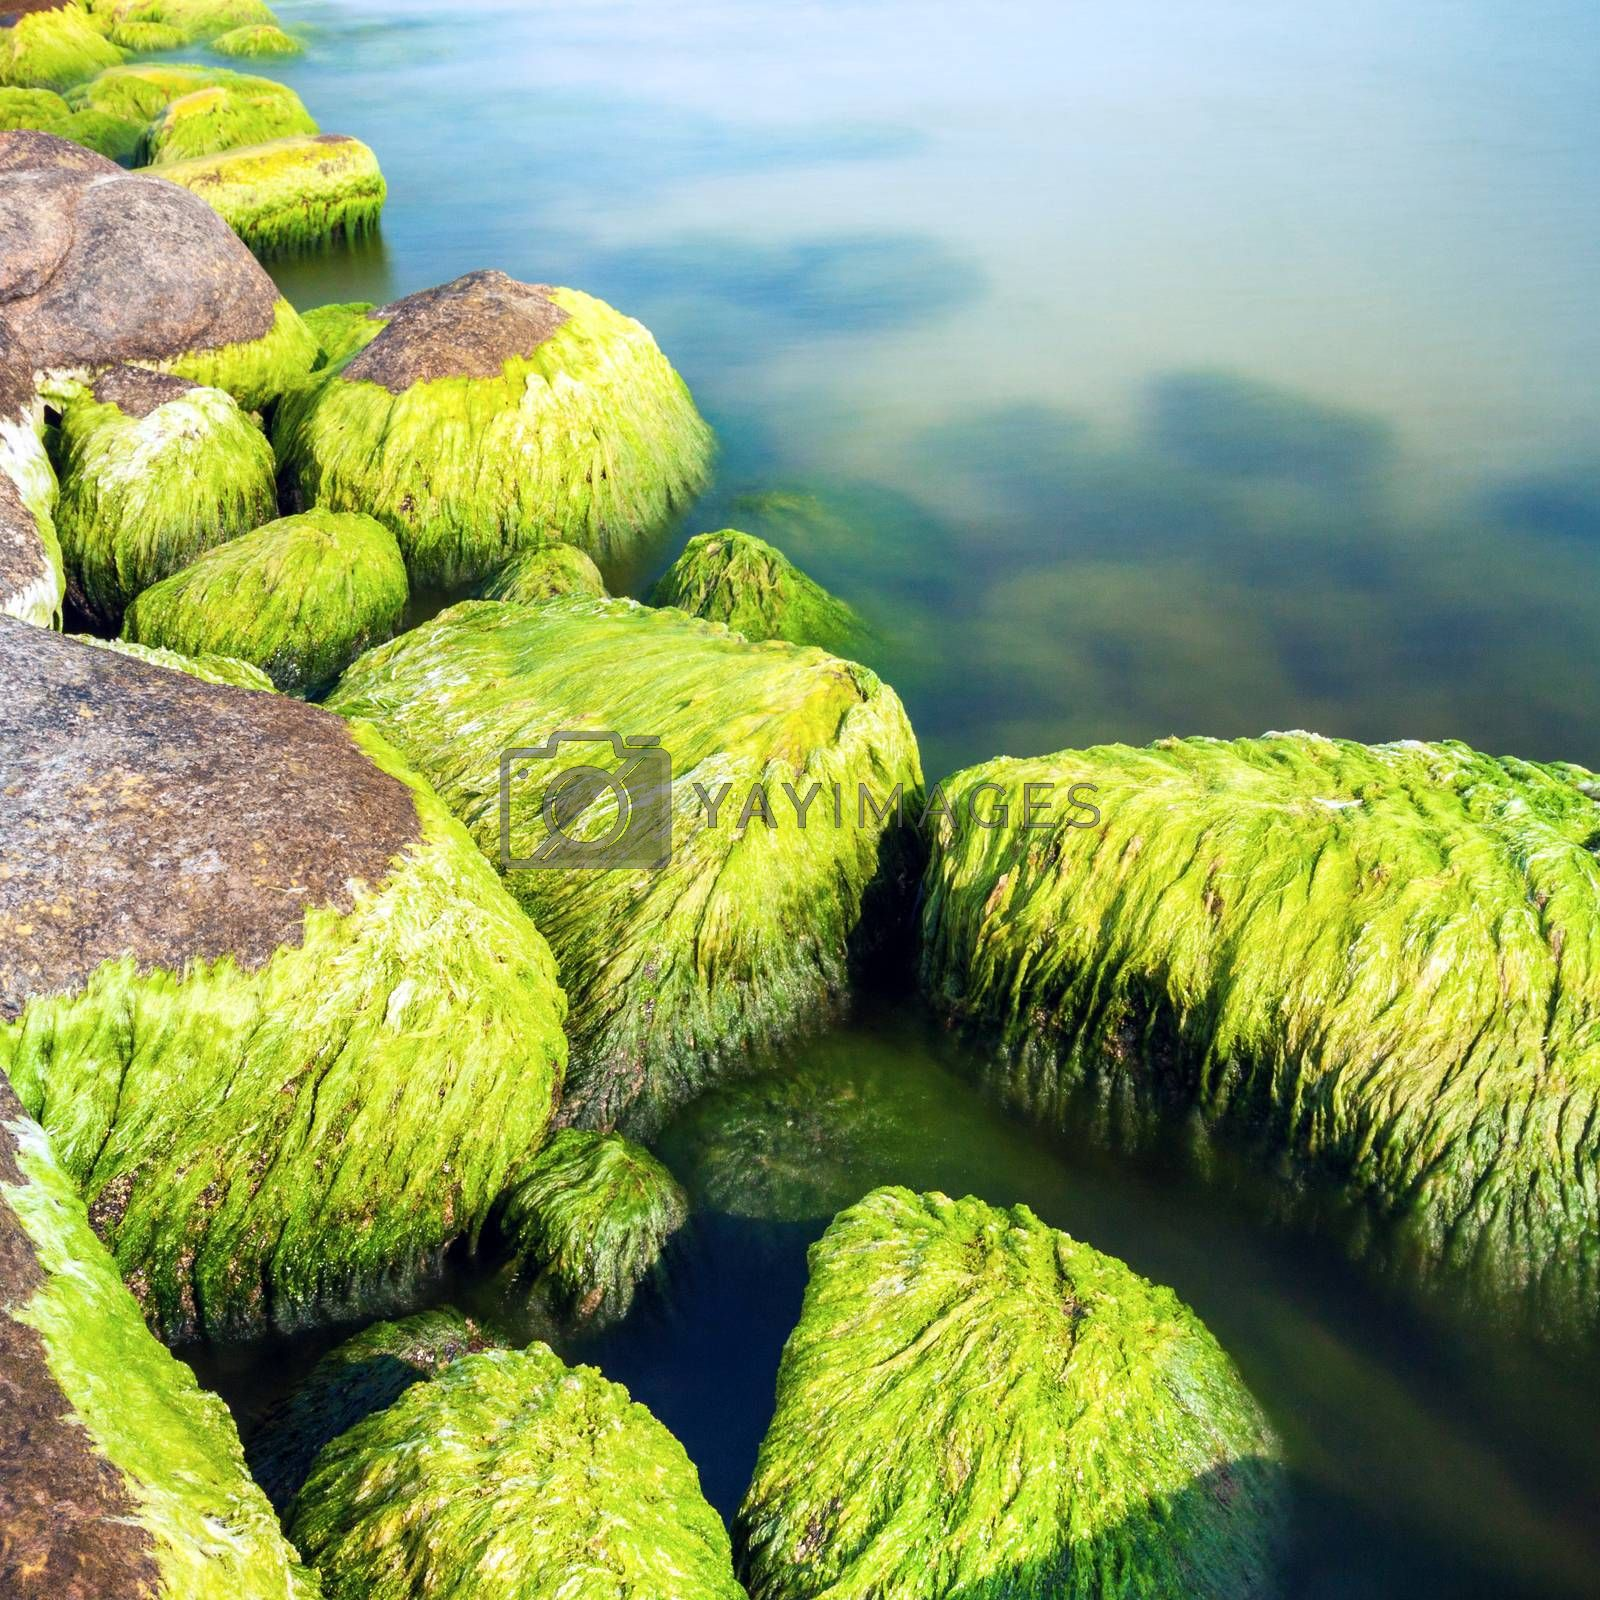 Seashore stones covered with moss and seaweed